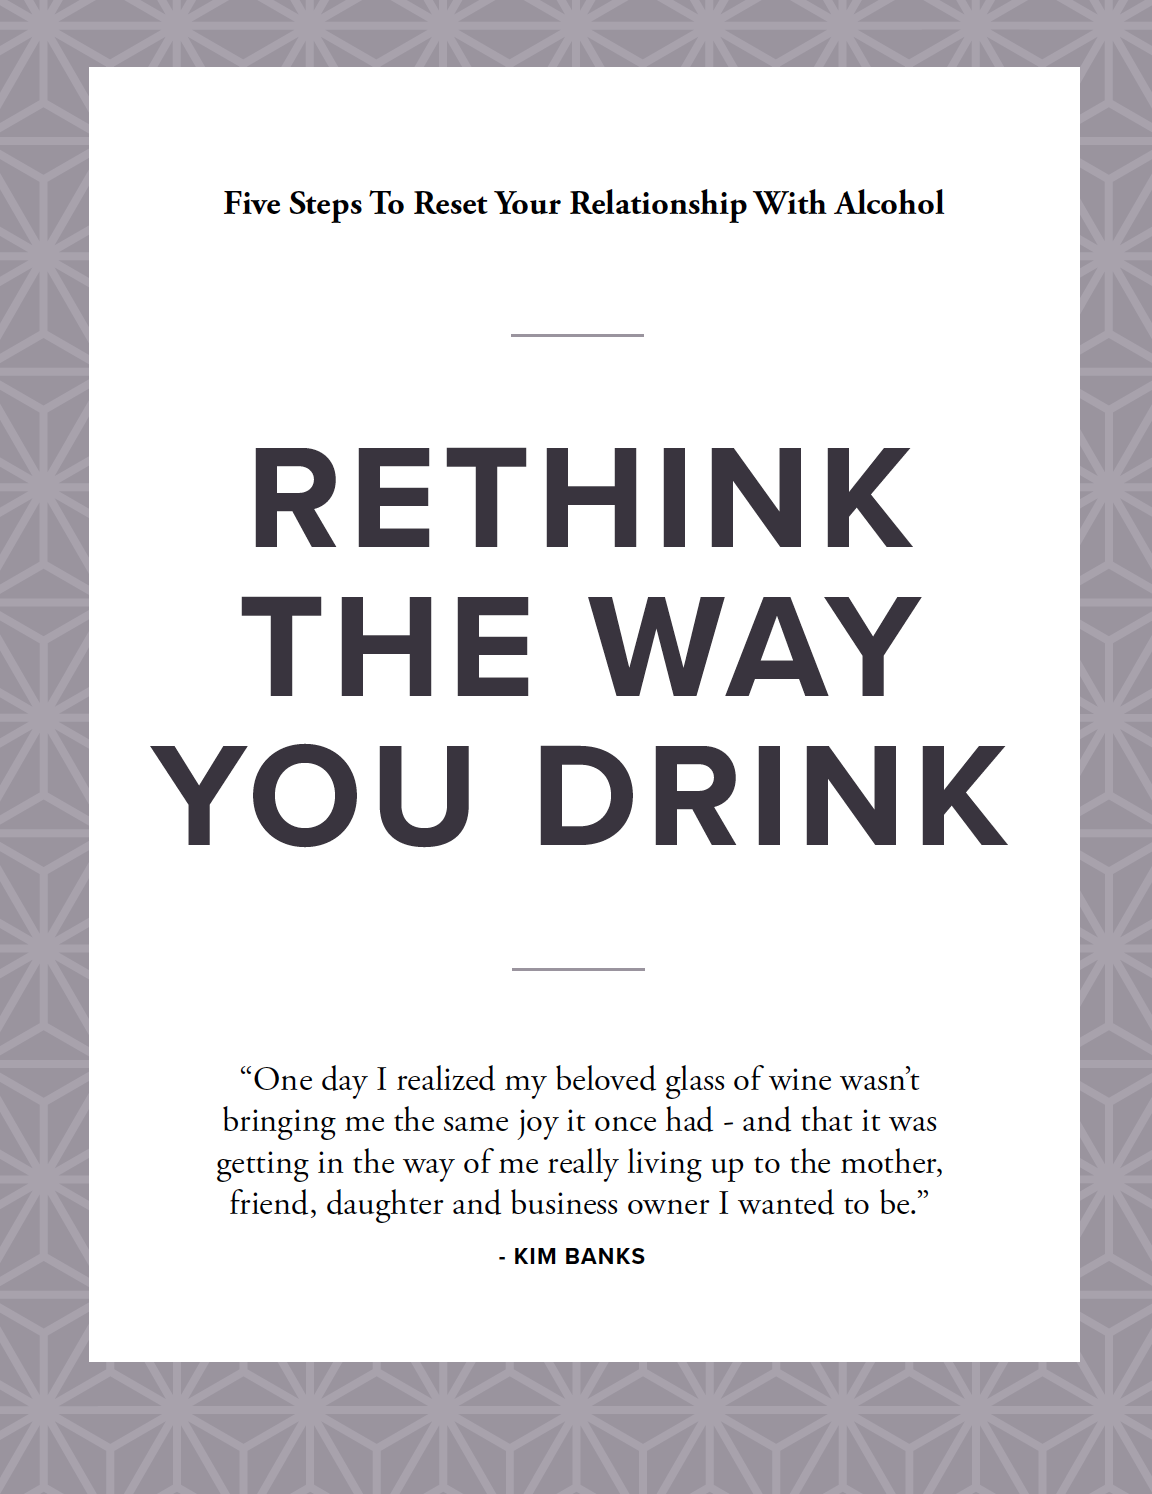 FREE GUIDE - Download your free five-step guide to Rethink The Way You Drink!